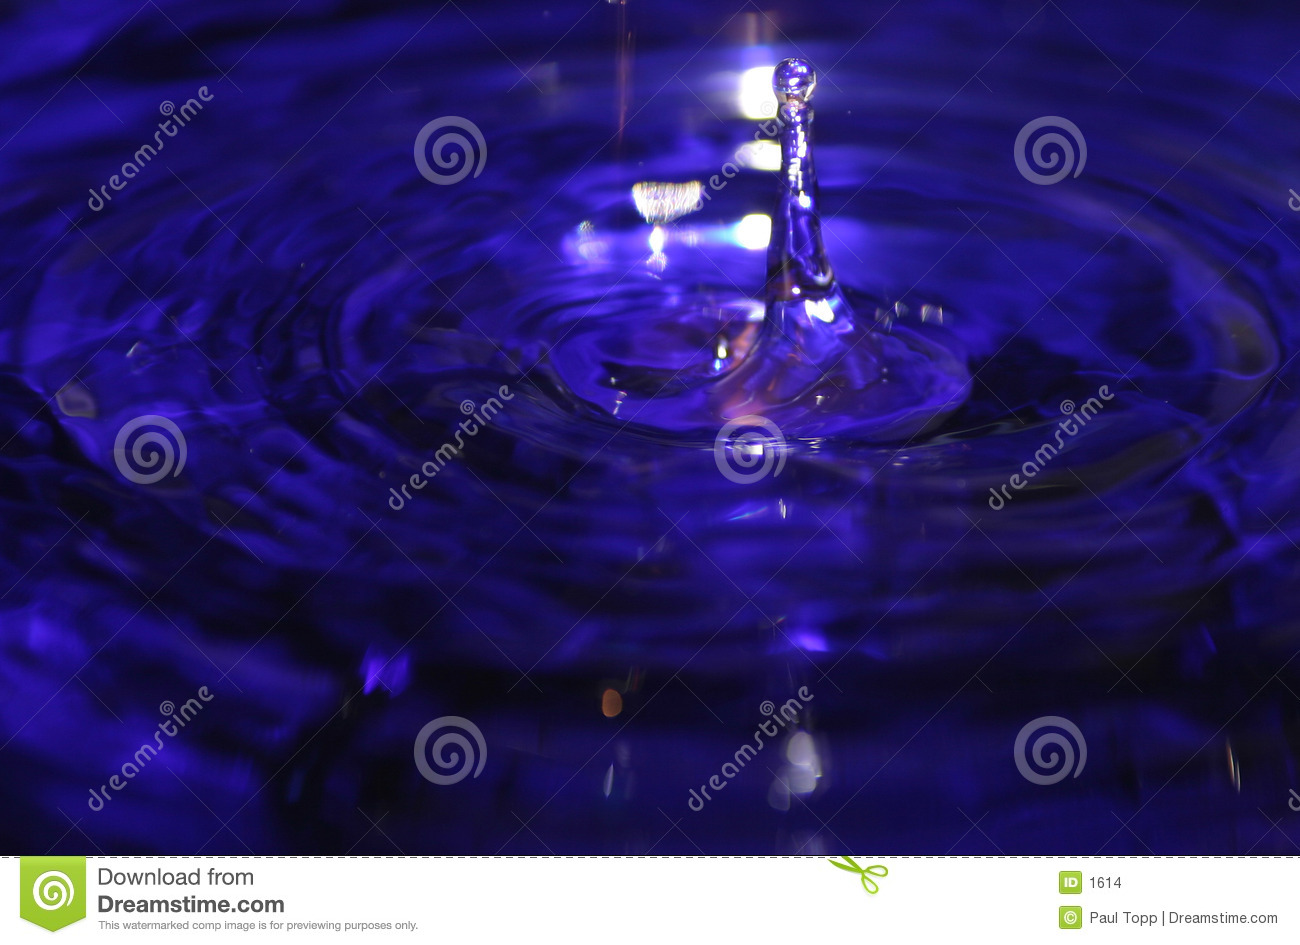 Water Drop Splash in Blue Liquid